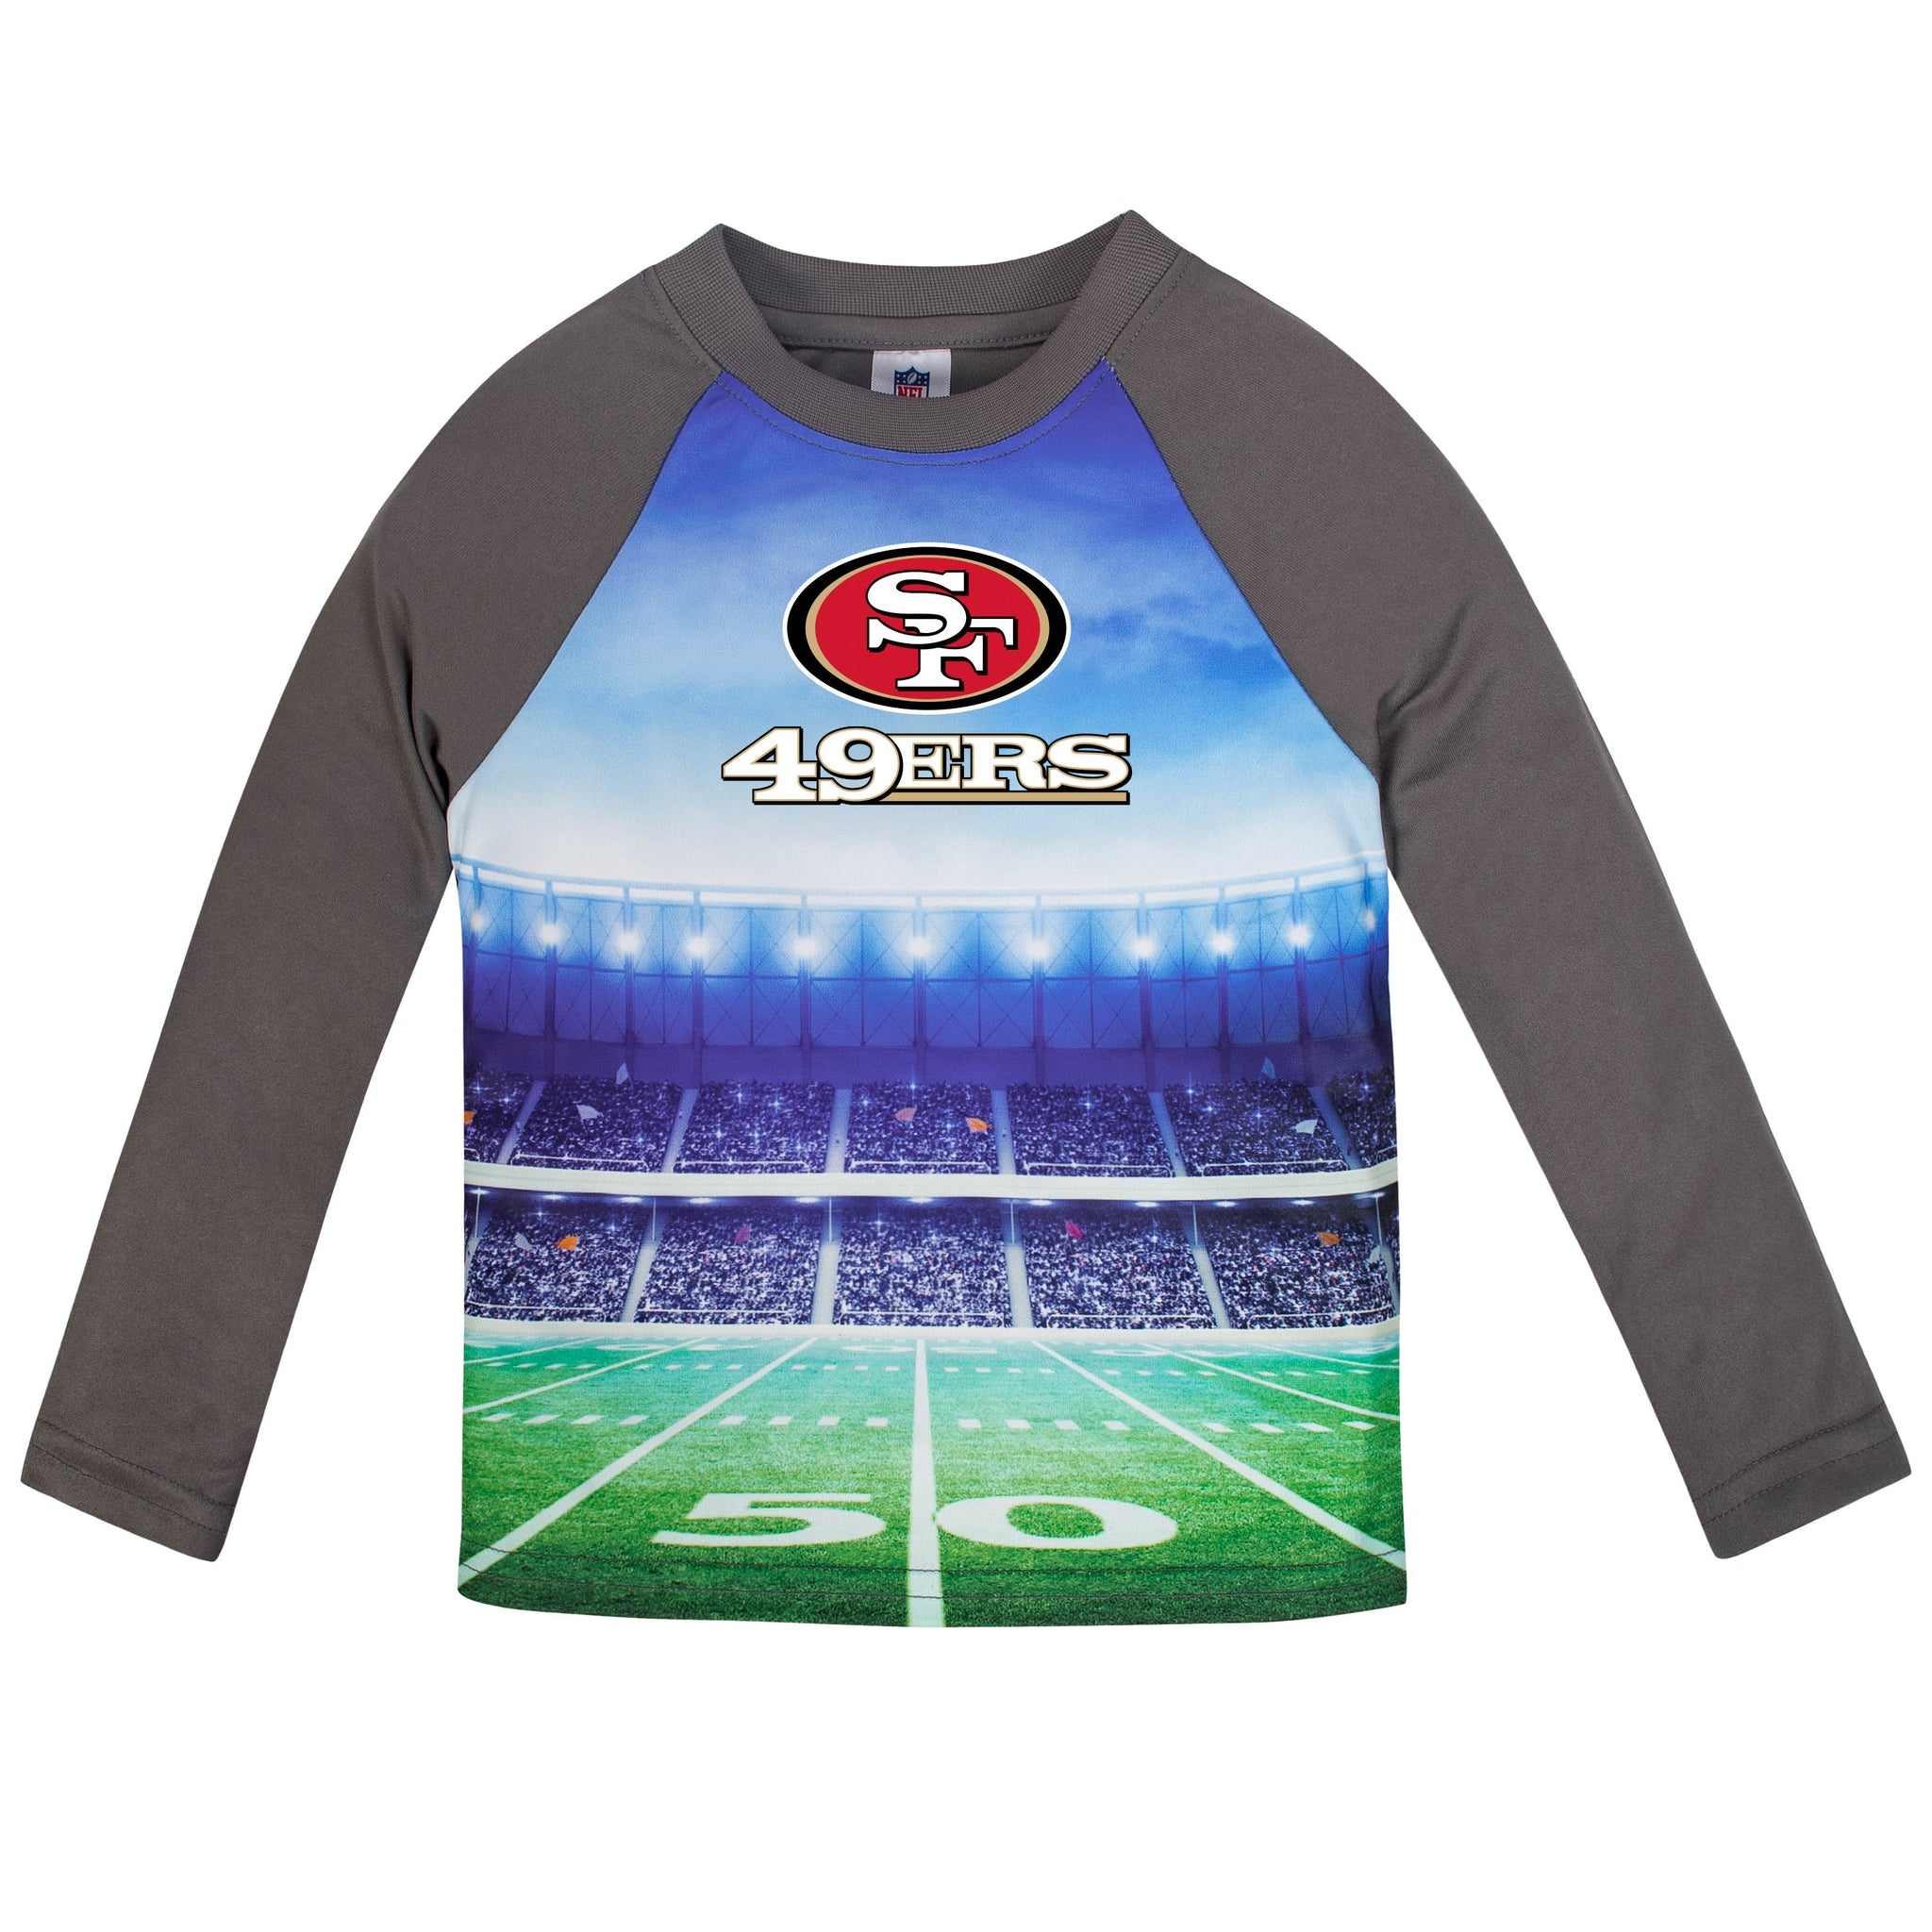 San Francisco 49ers Boys Long Sleeve Tee Shirt